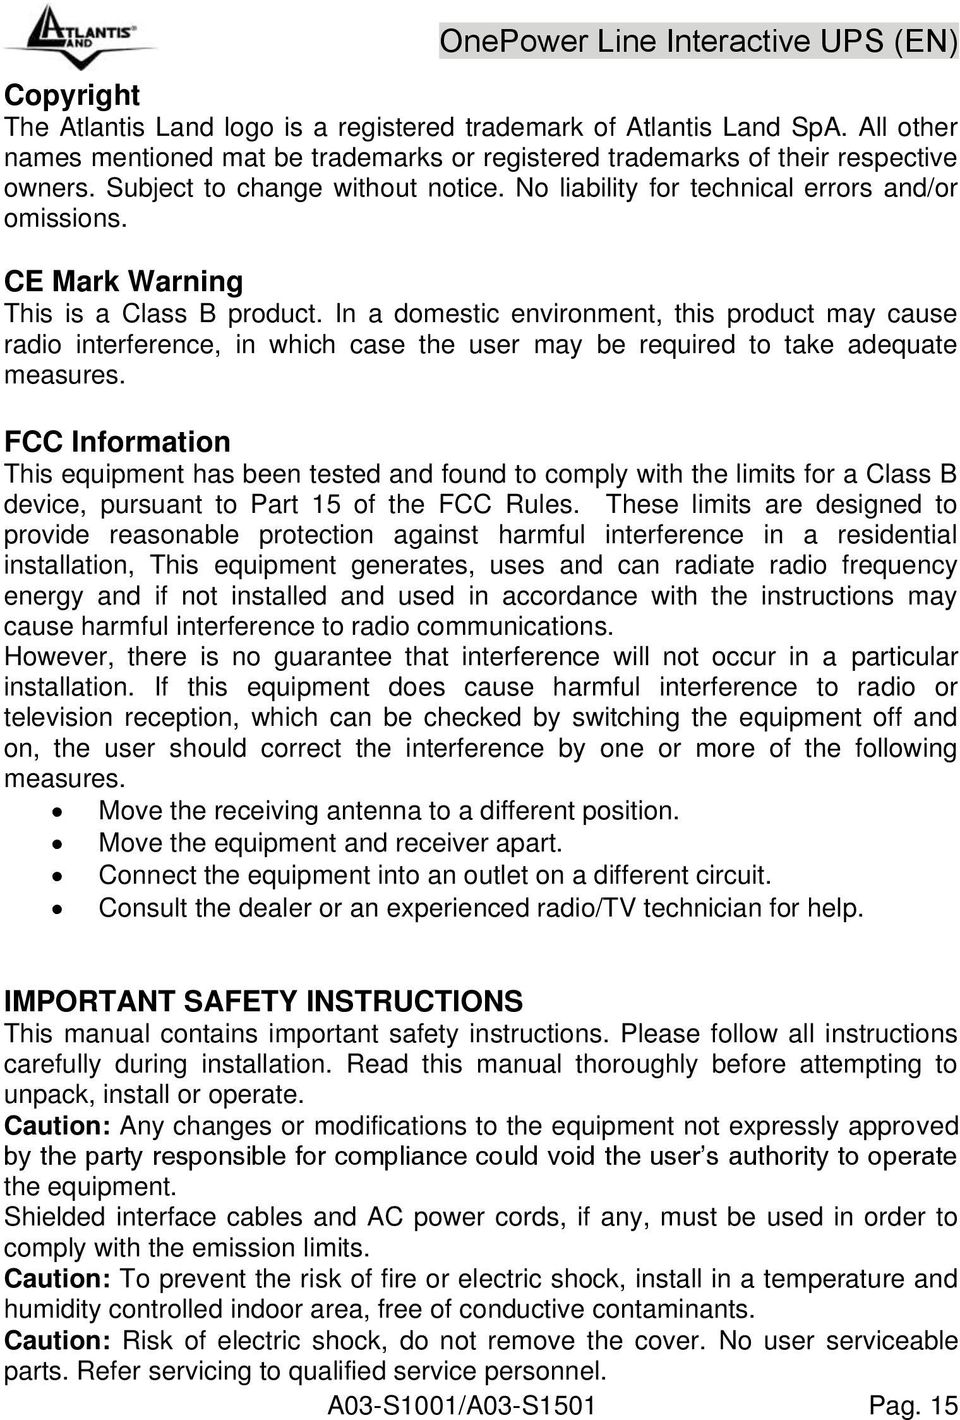 CE Mark Warning This is a Class B product. In a domestic environment, this product may cause radio interference, in which case the user may be required to take adequate measures.